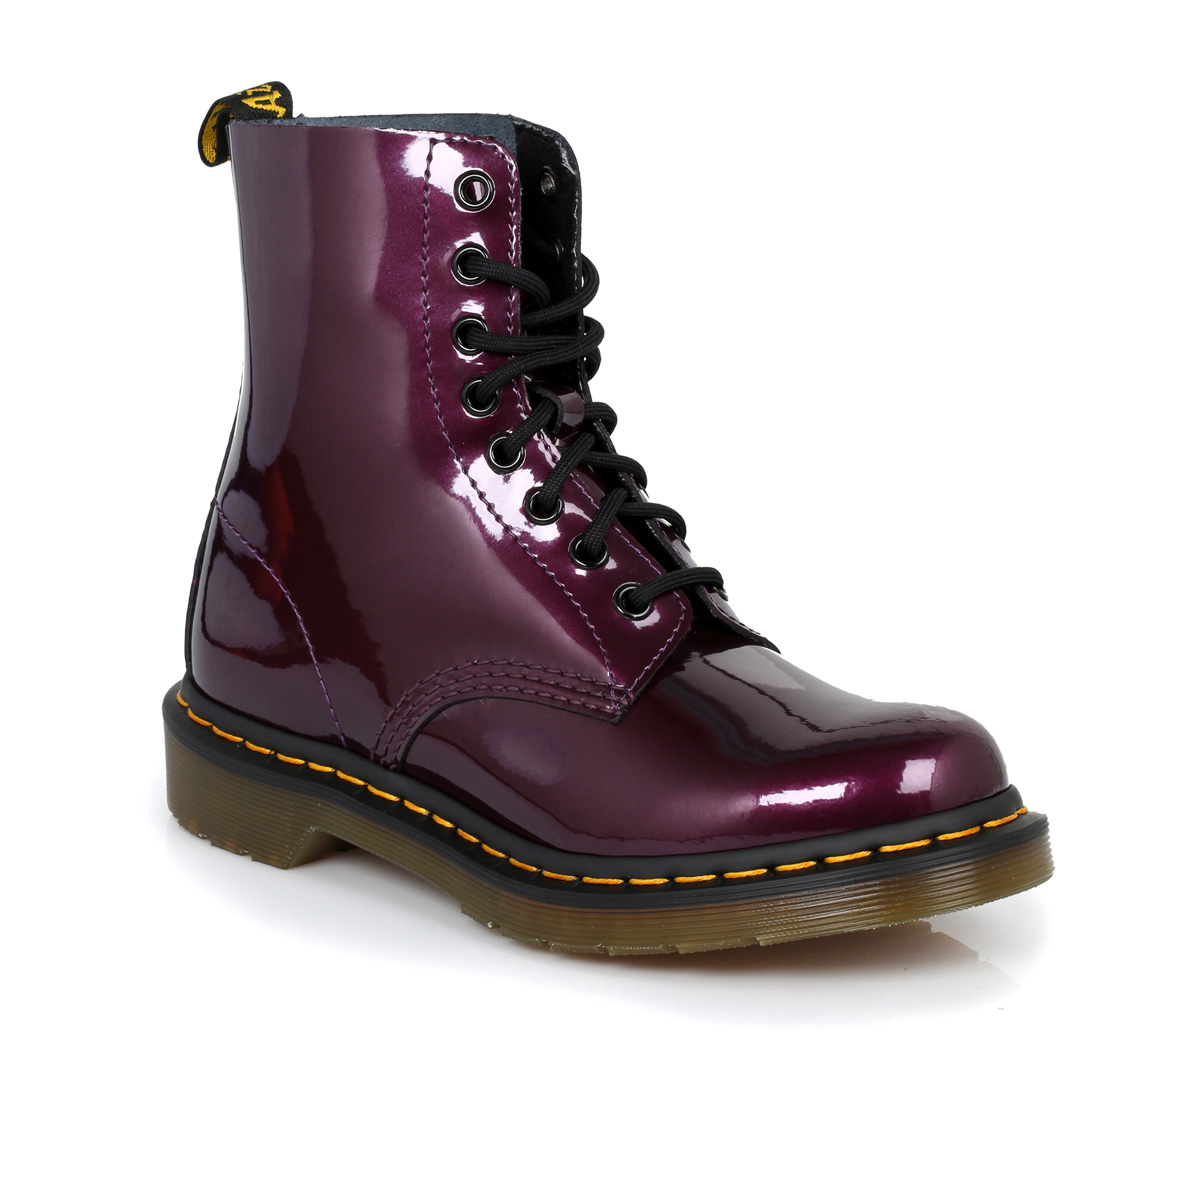 Dr Martens Purple Pascal Leather Womens Boots sizes 3-9